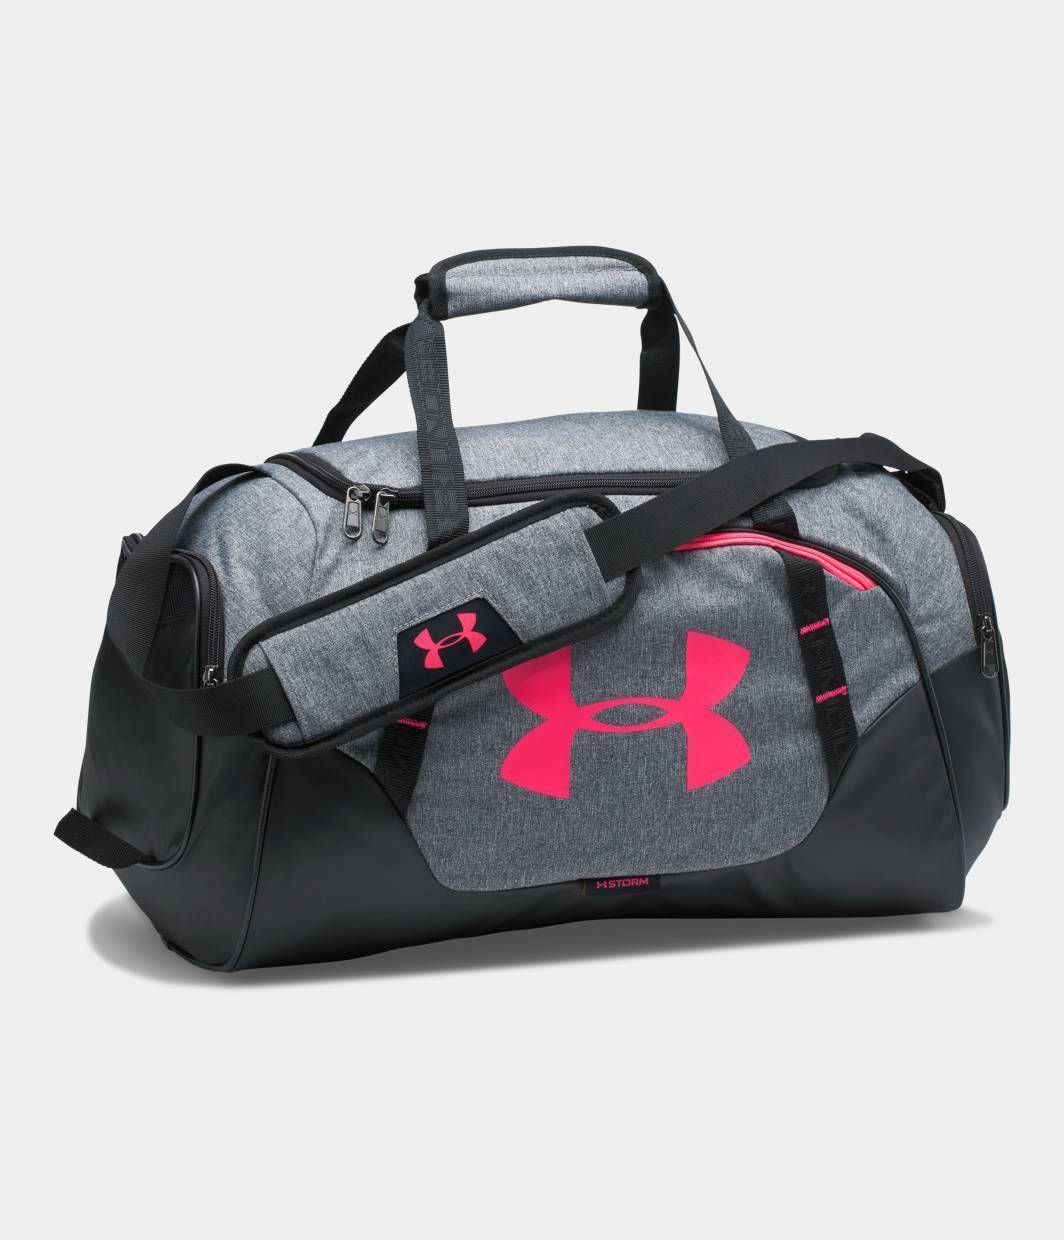 97bd3f0c04 Under Armour UA Undeniable 3.0 Small Duffle Bag All Sport Duffel Gym ...